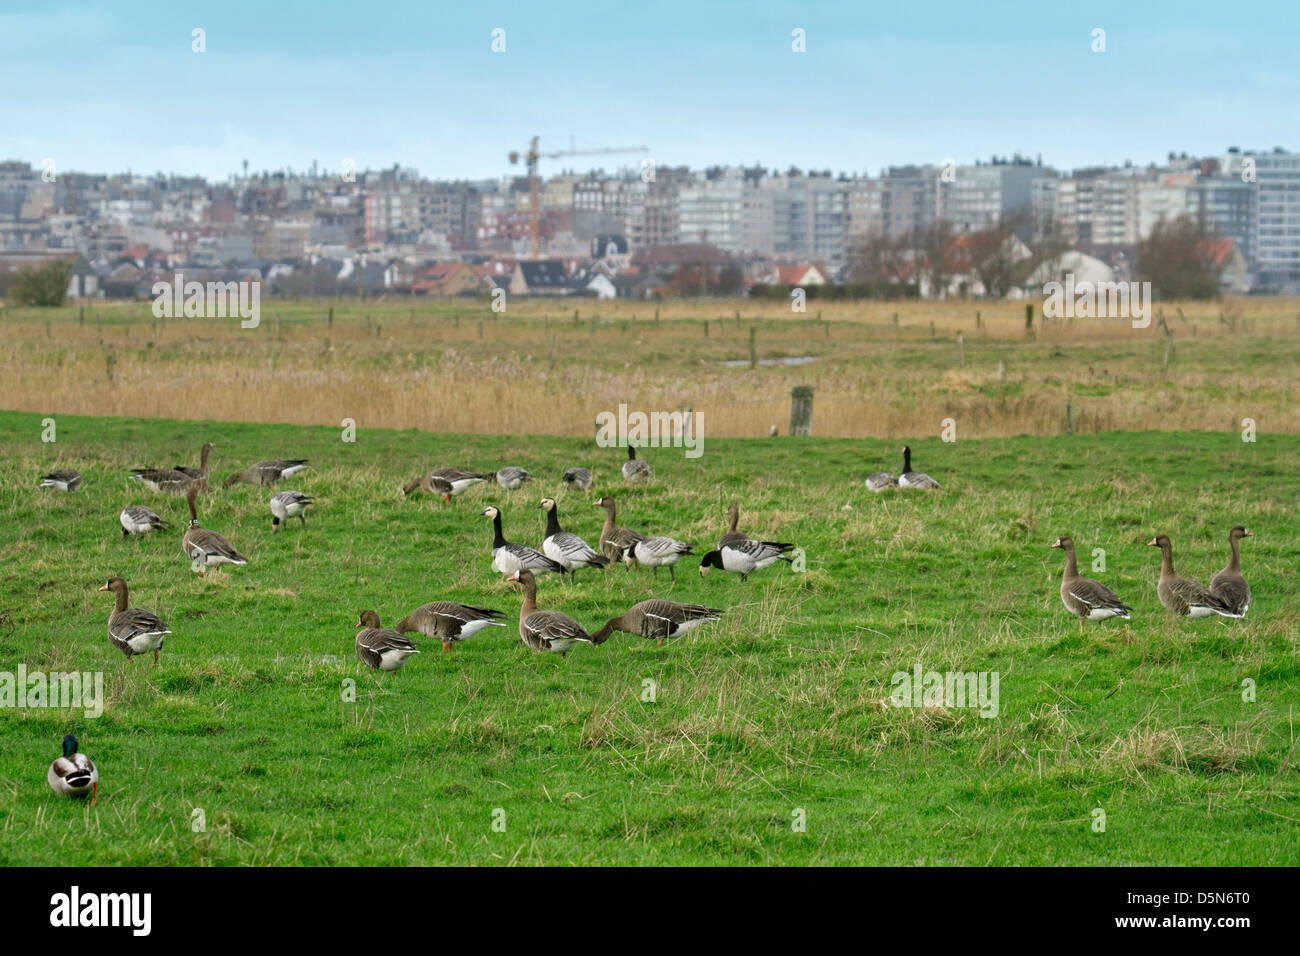 Greater White-fronted geese (Anser albifrons) and Barnacle geese (Branta leucopsis) foraging in polder in Flanders, - Stock Image